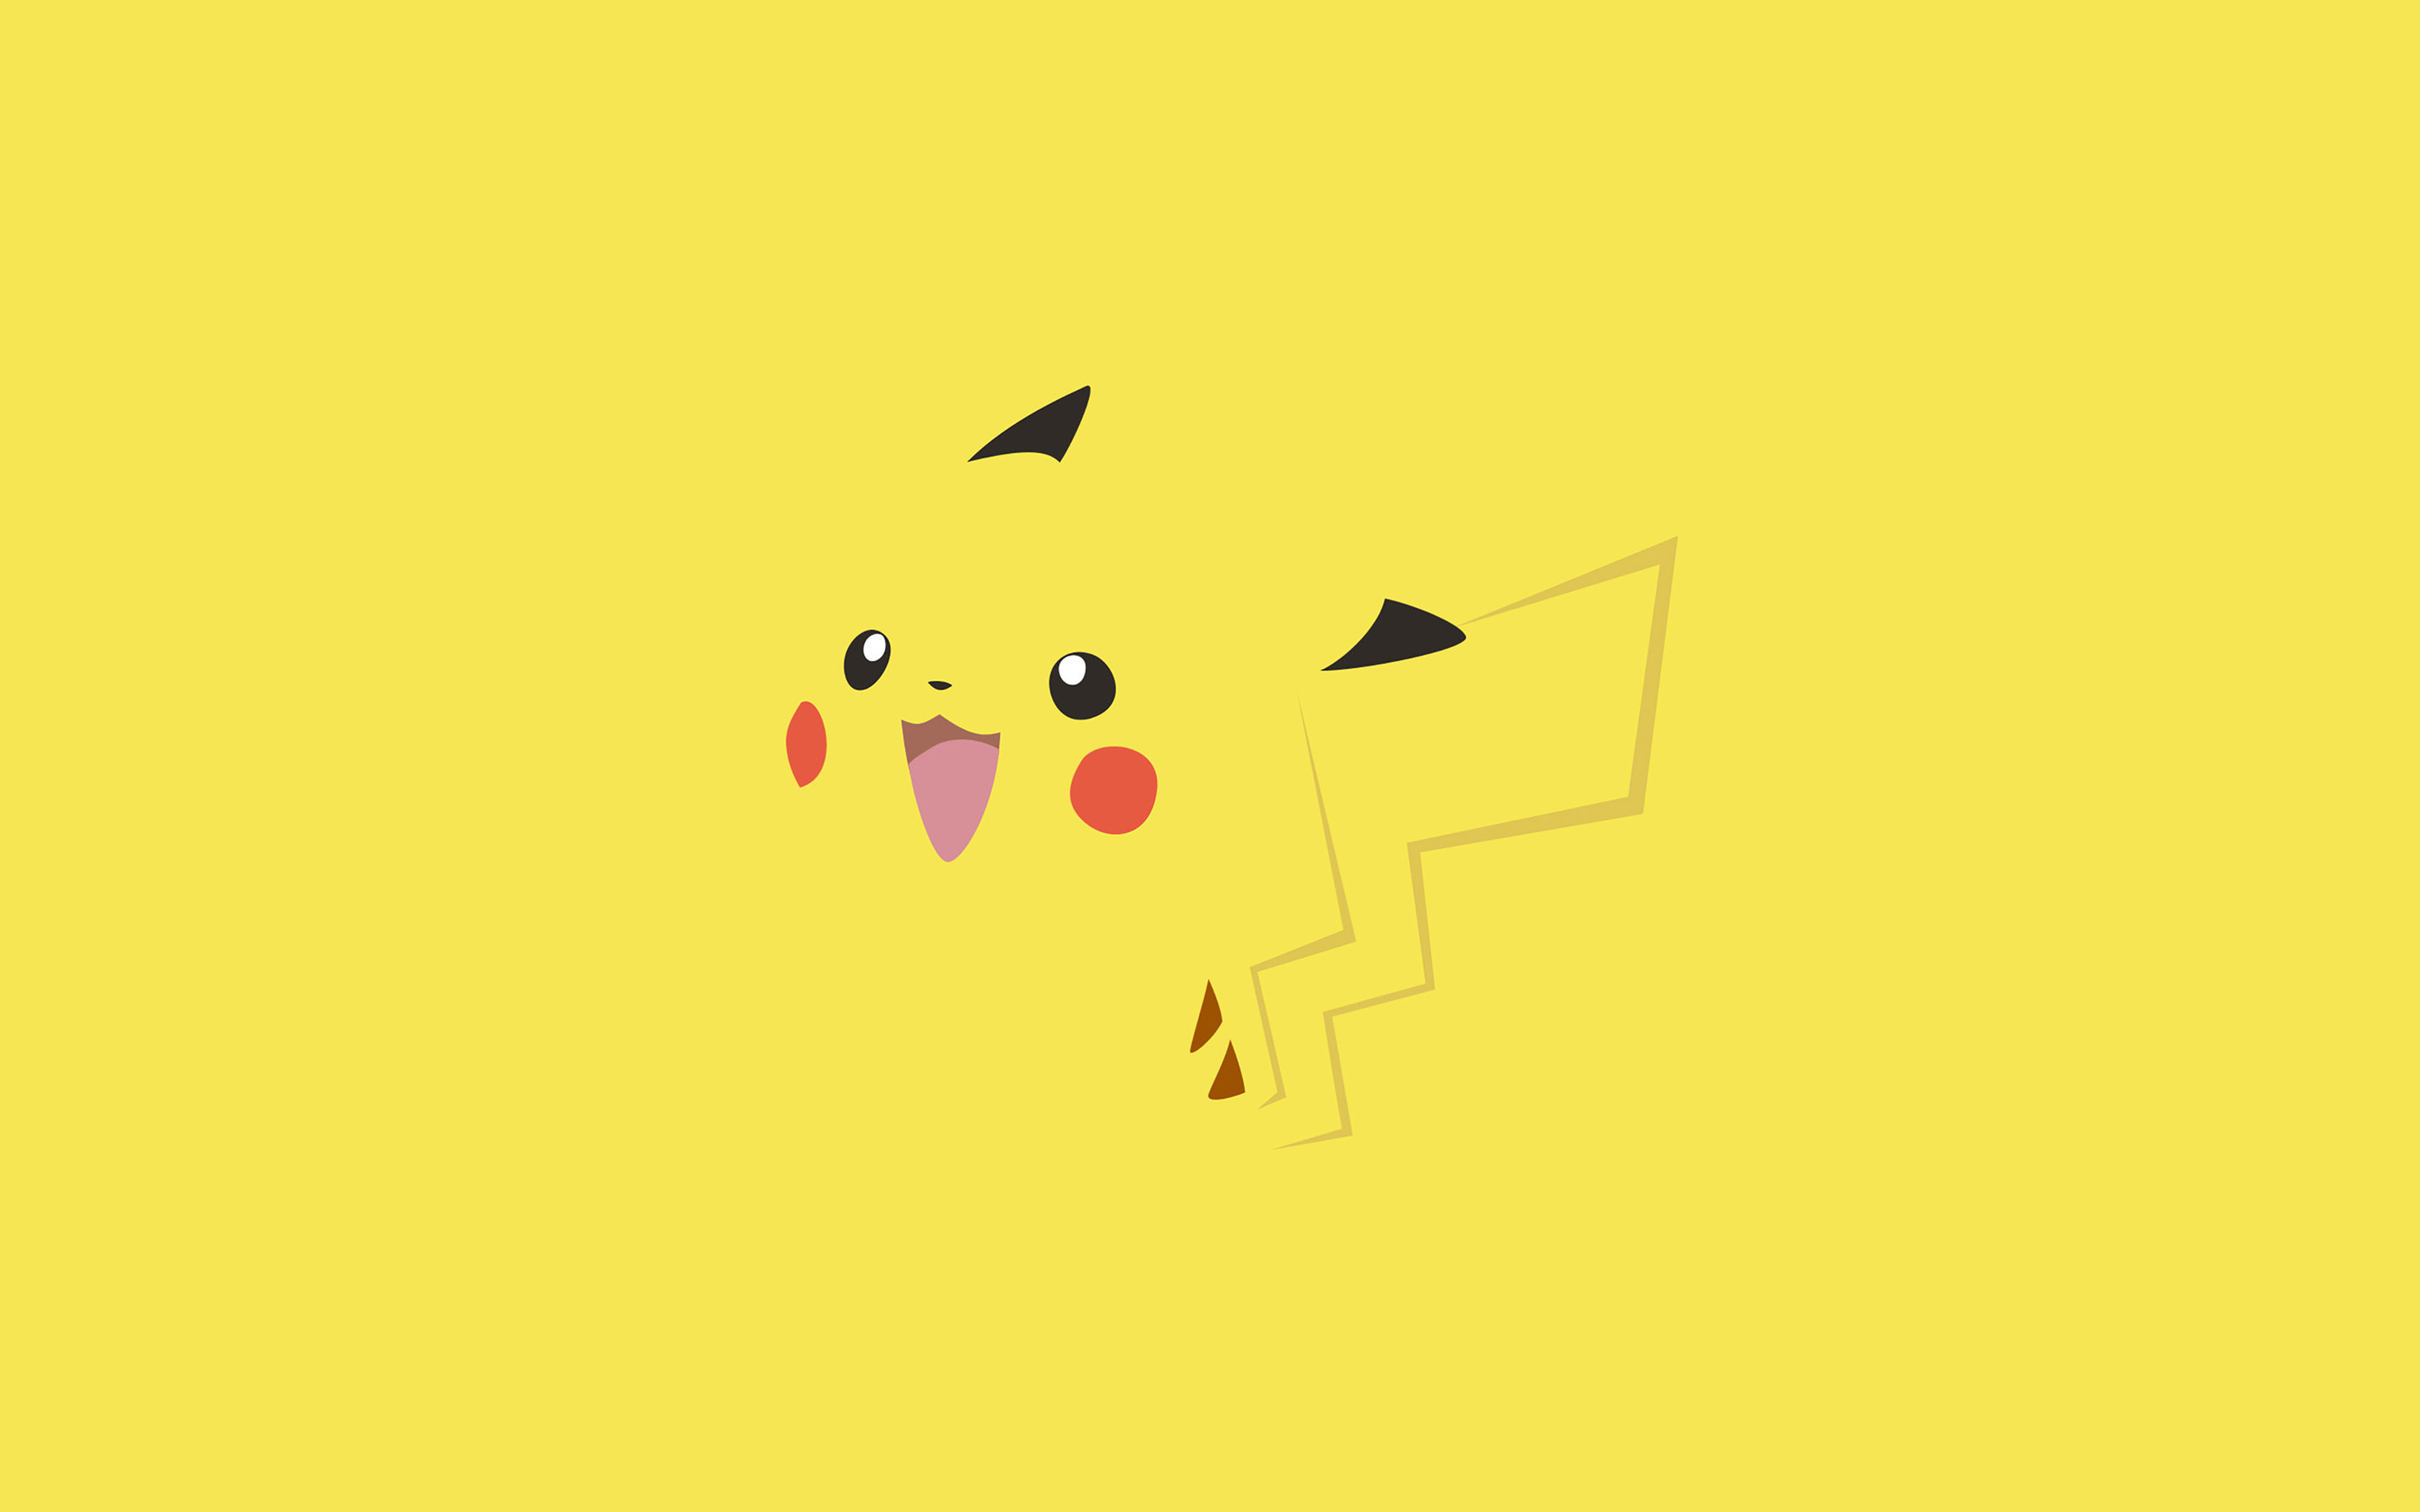 Hd Car Wallpapers Ab71 Wallpaper Pikachu Yellow Anime Papers Co